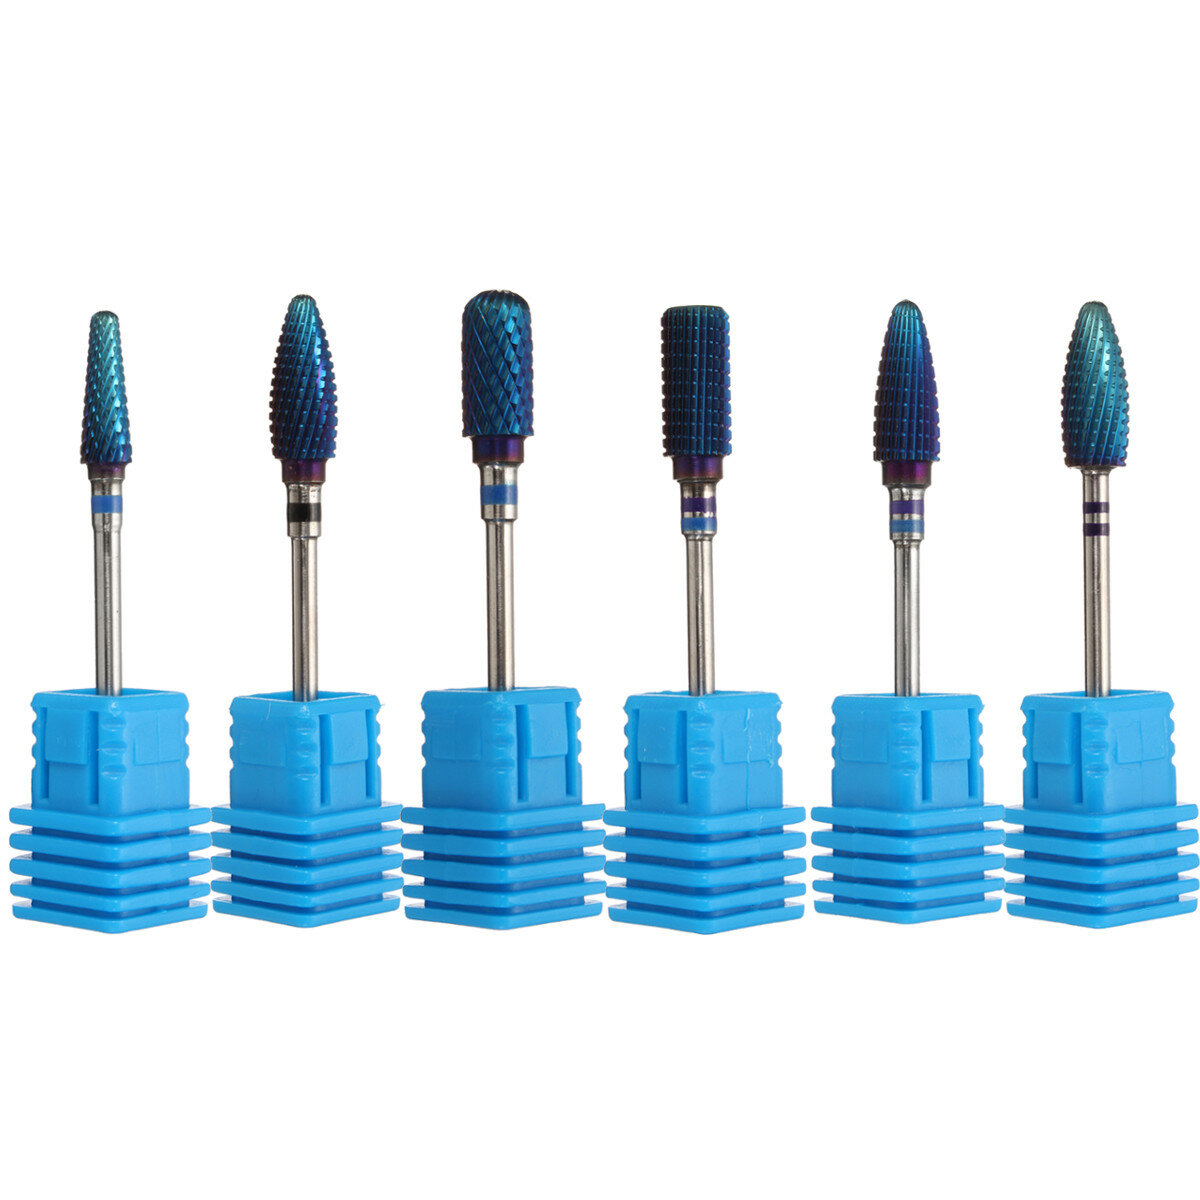 Pro Electric Blue Cylinder Coated Carbide File Drill Bit Nail Art Manicure Pedicure Kit